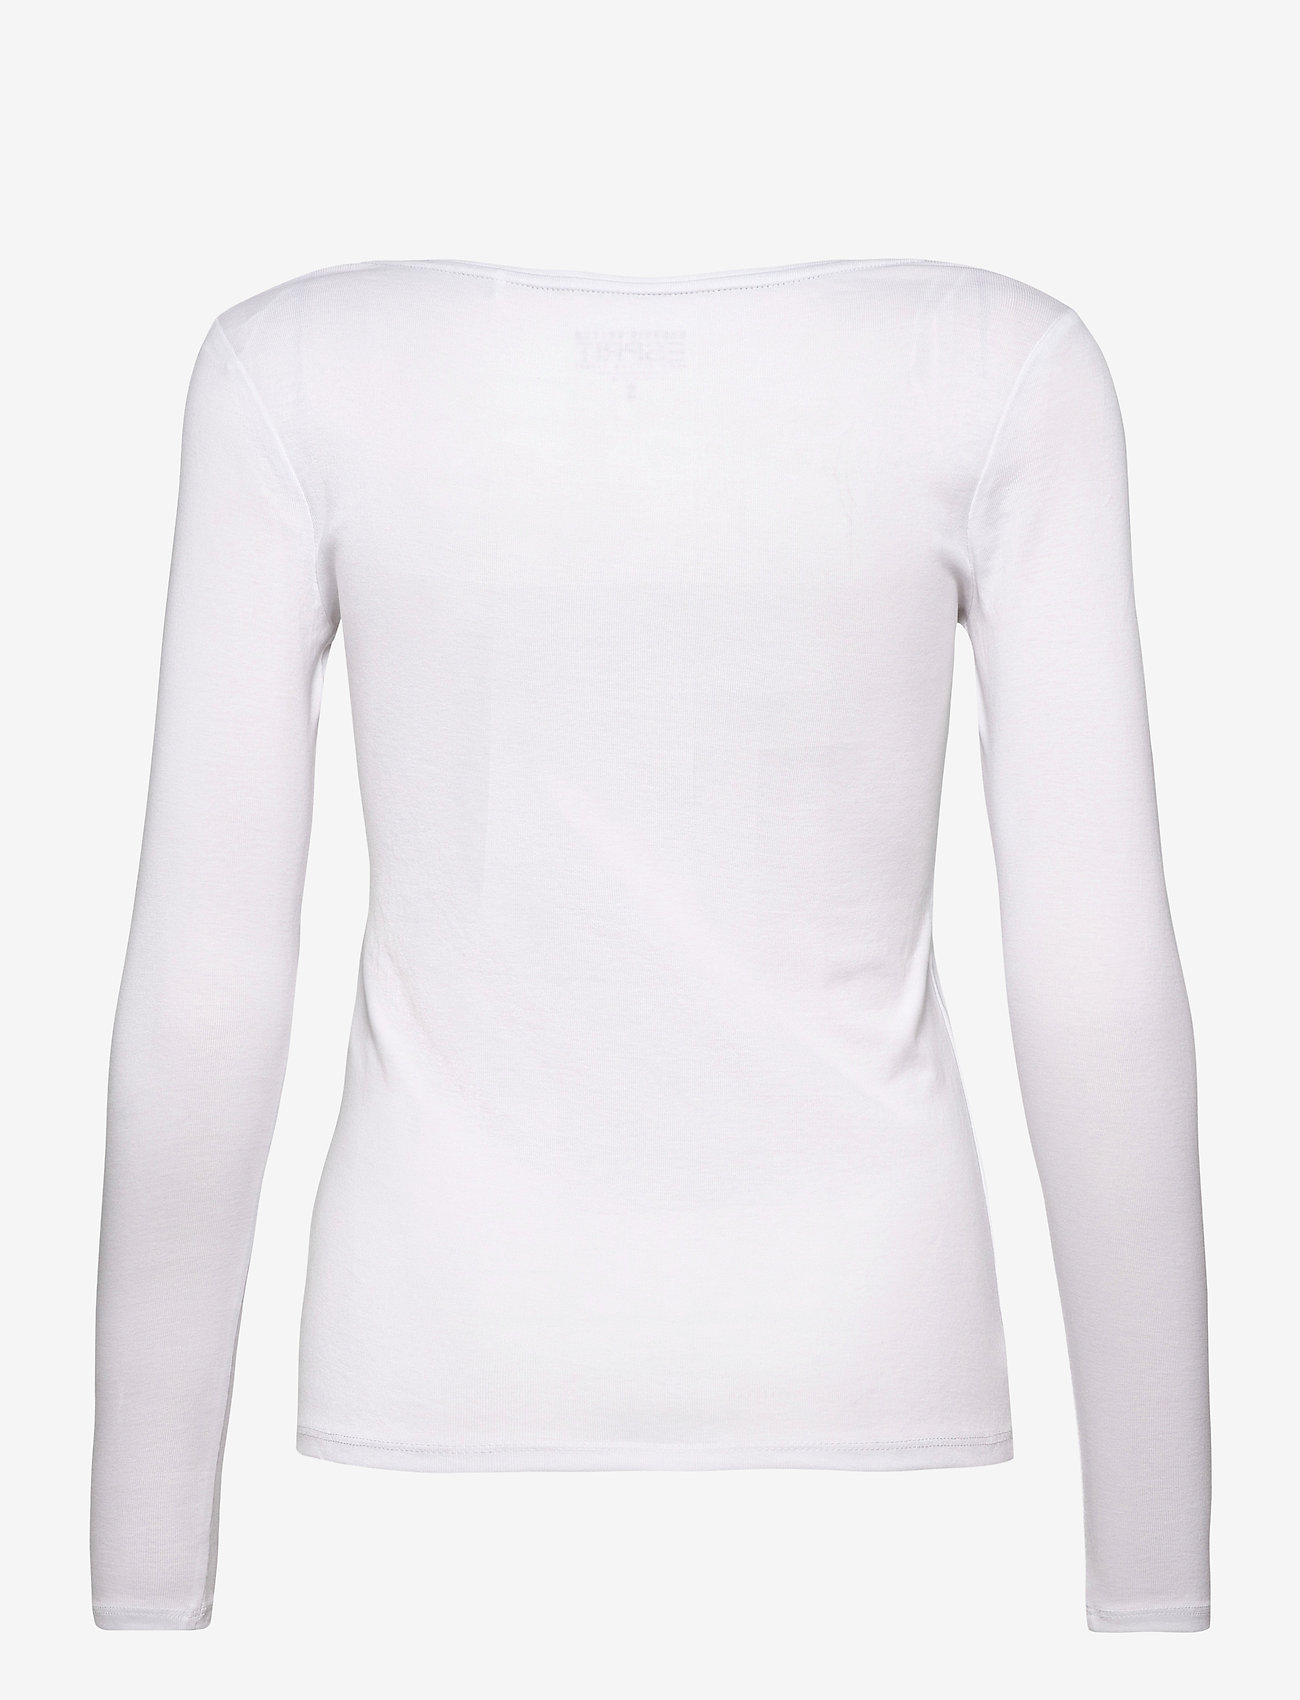 Esprit Casual - T-Shirts - t-shirt & tops - white - 1